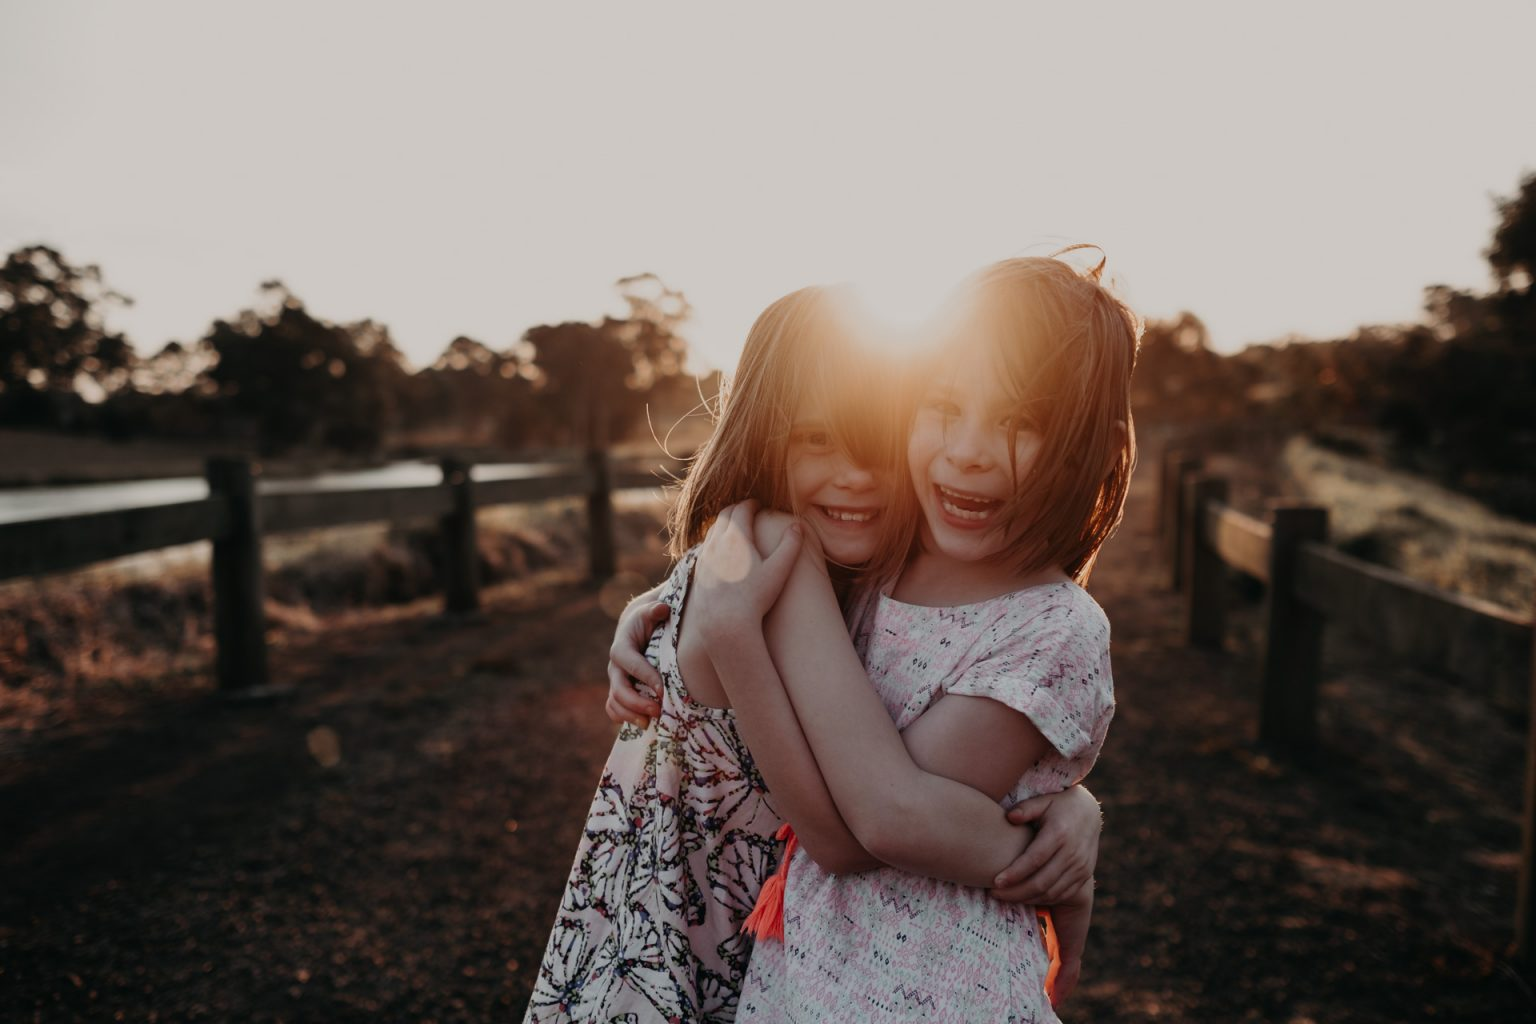 twin girls posing country lane golden light late afternoon sunset